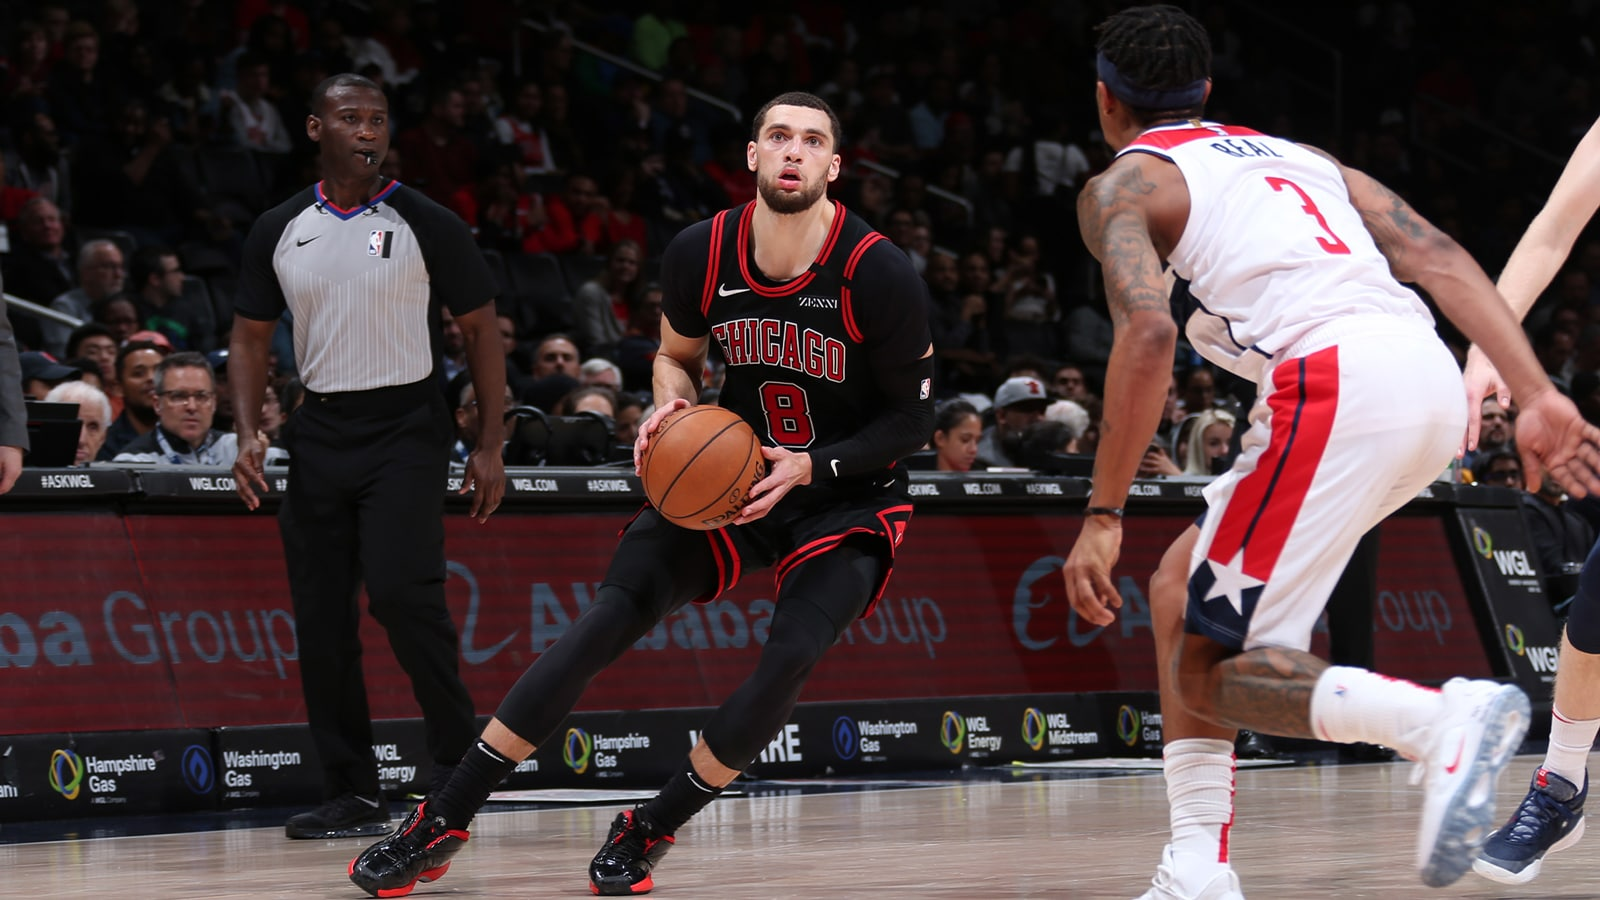 Zach LaVine stepping back for the jump shot